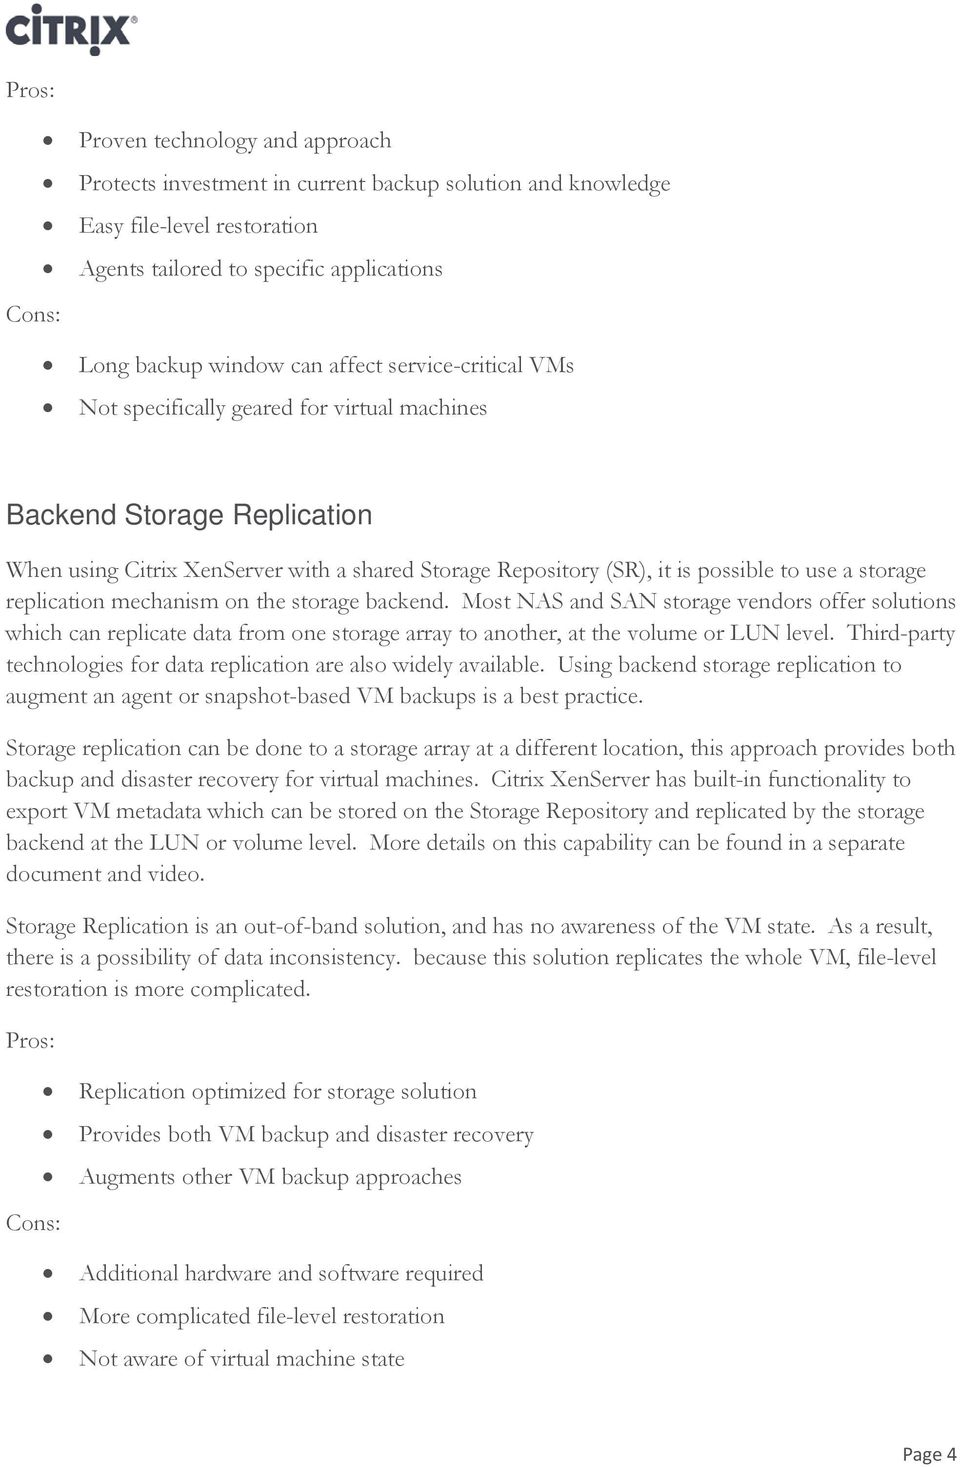 replication mechanism on the storage backend. Most NAS and SAN storage vendors offer solutions which can replicate data from one storage array to another, at the volume or LUN level.